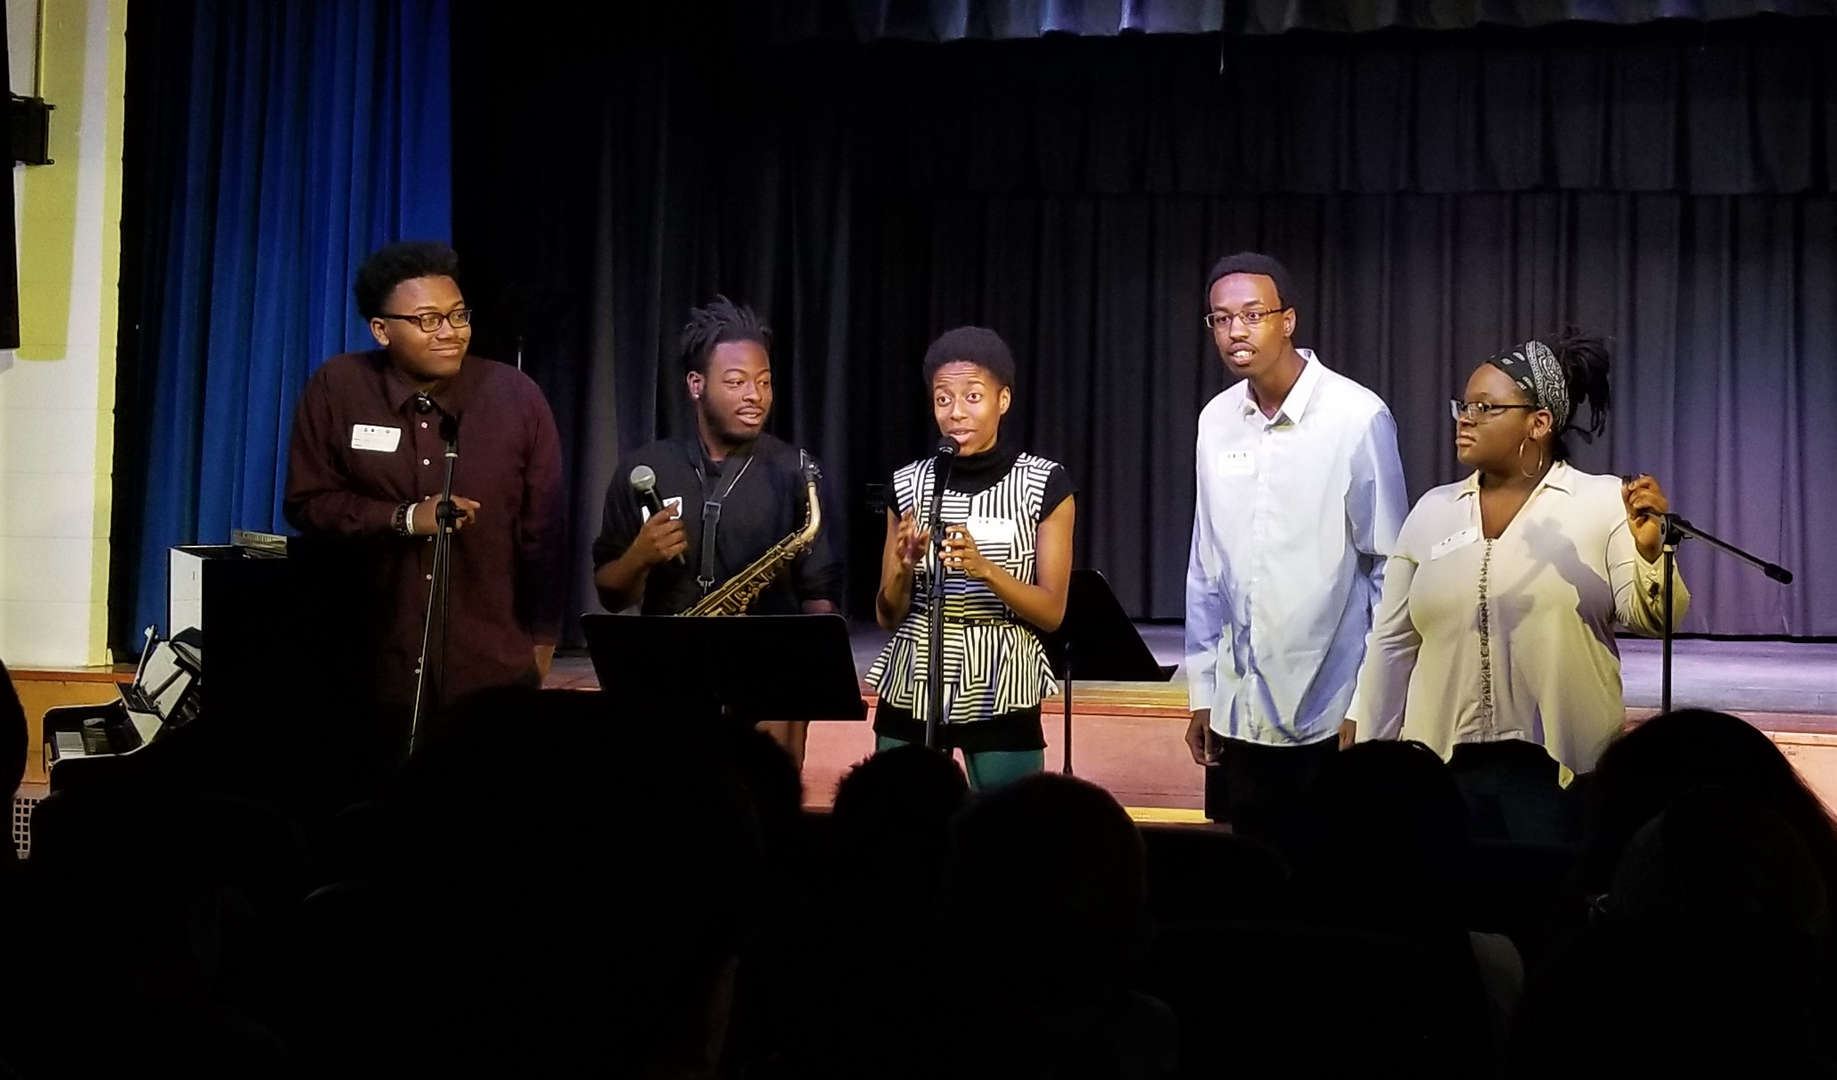 Five musicians answered students' questions after performing.